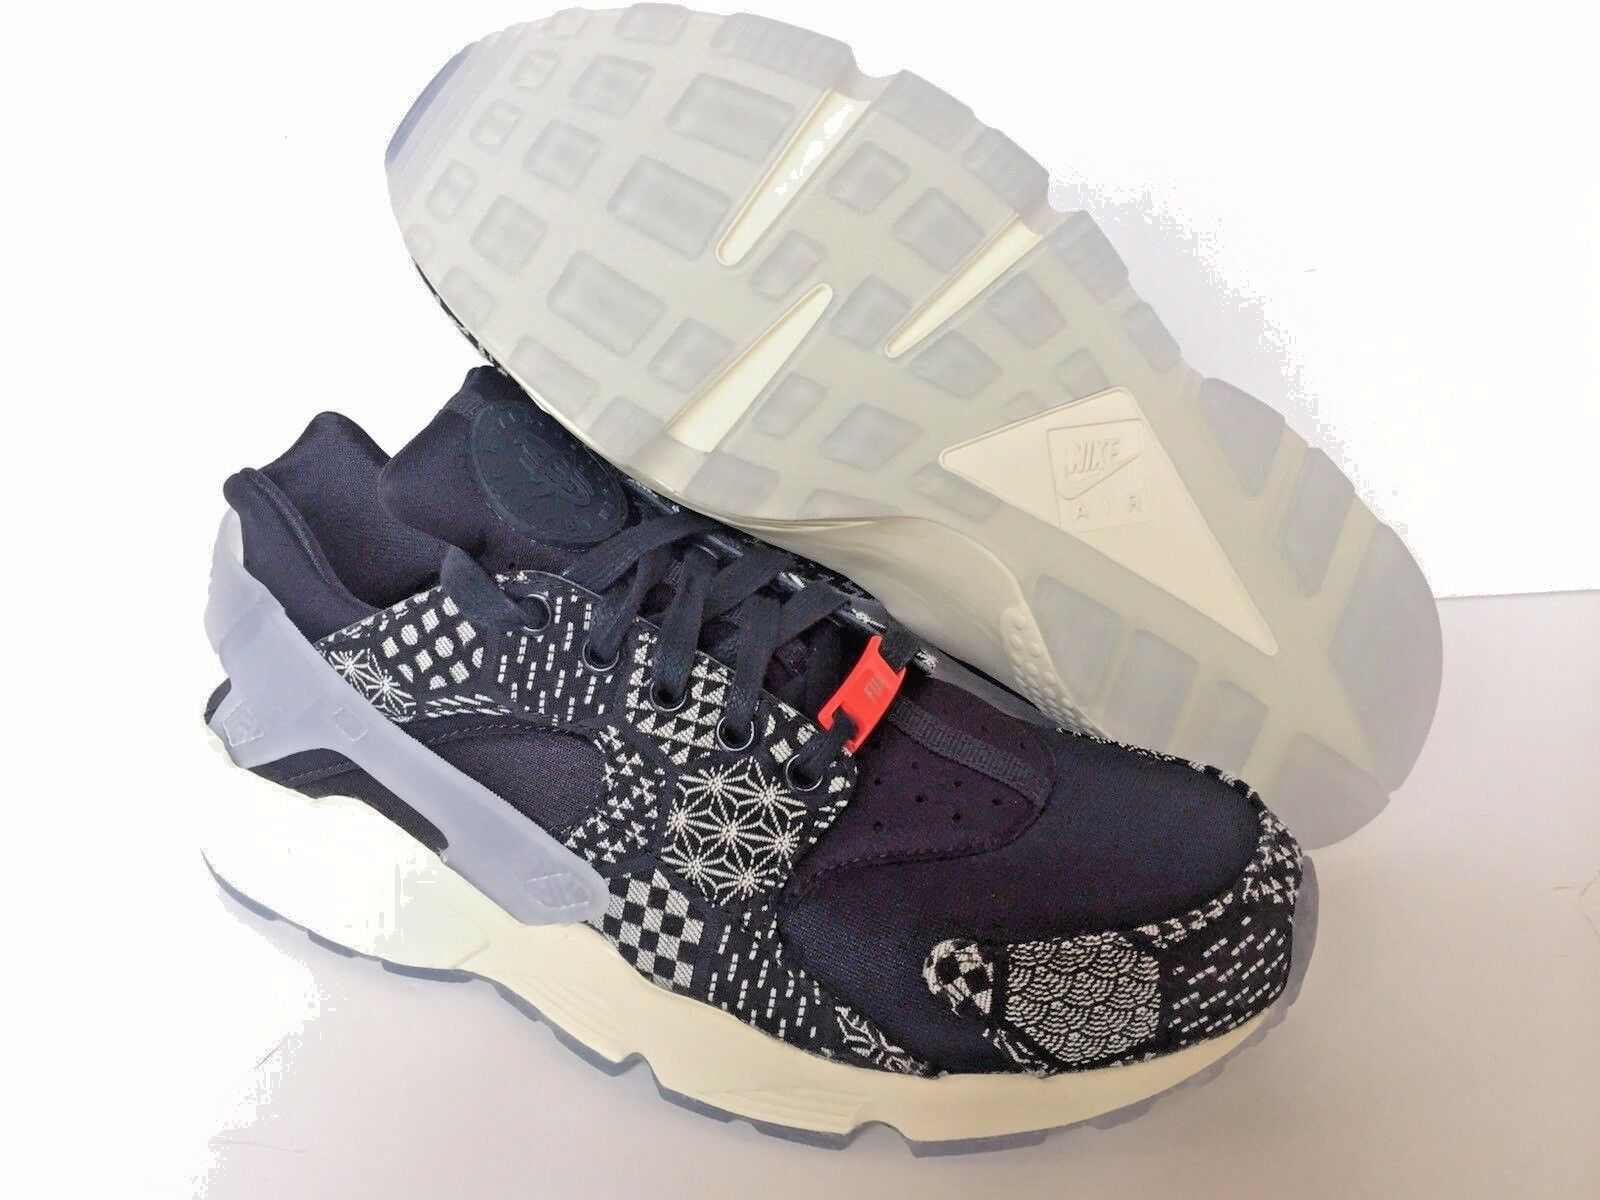 NIKE  AIR HUARACHE ID NAVY BLUE/WHITE MENS SZ 8.5 [777330 976] NEW